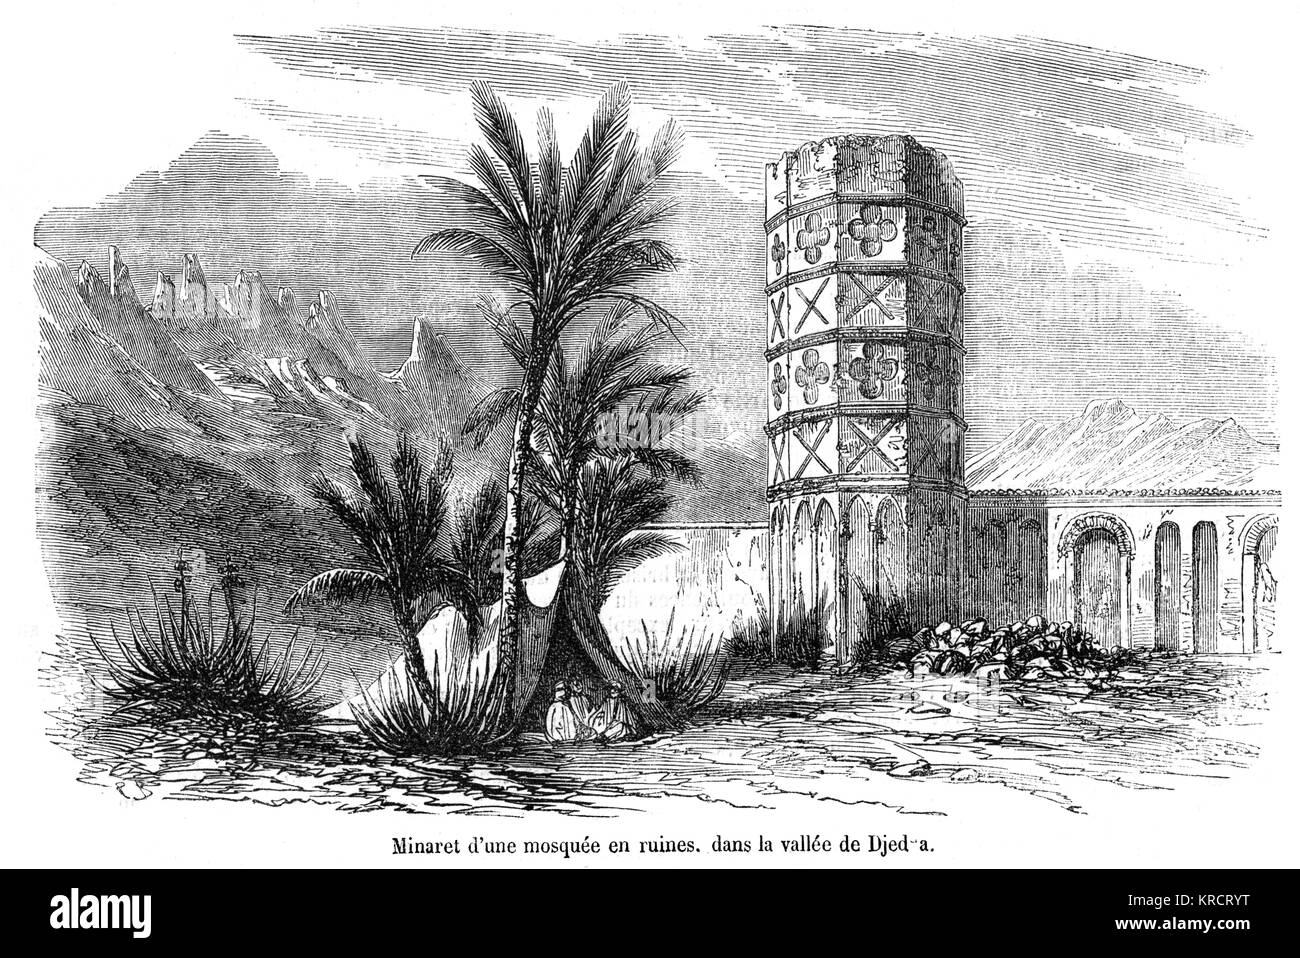 Ruined mosque with minaret Date: 1854 - Stock Image